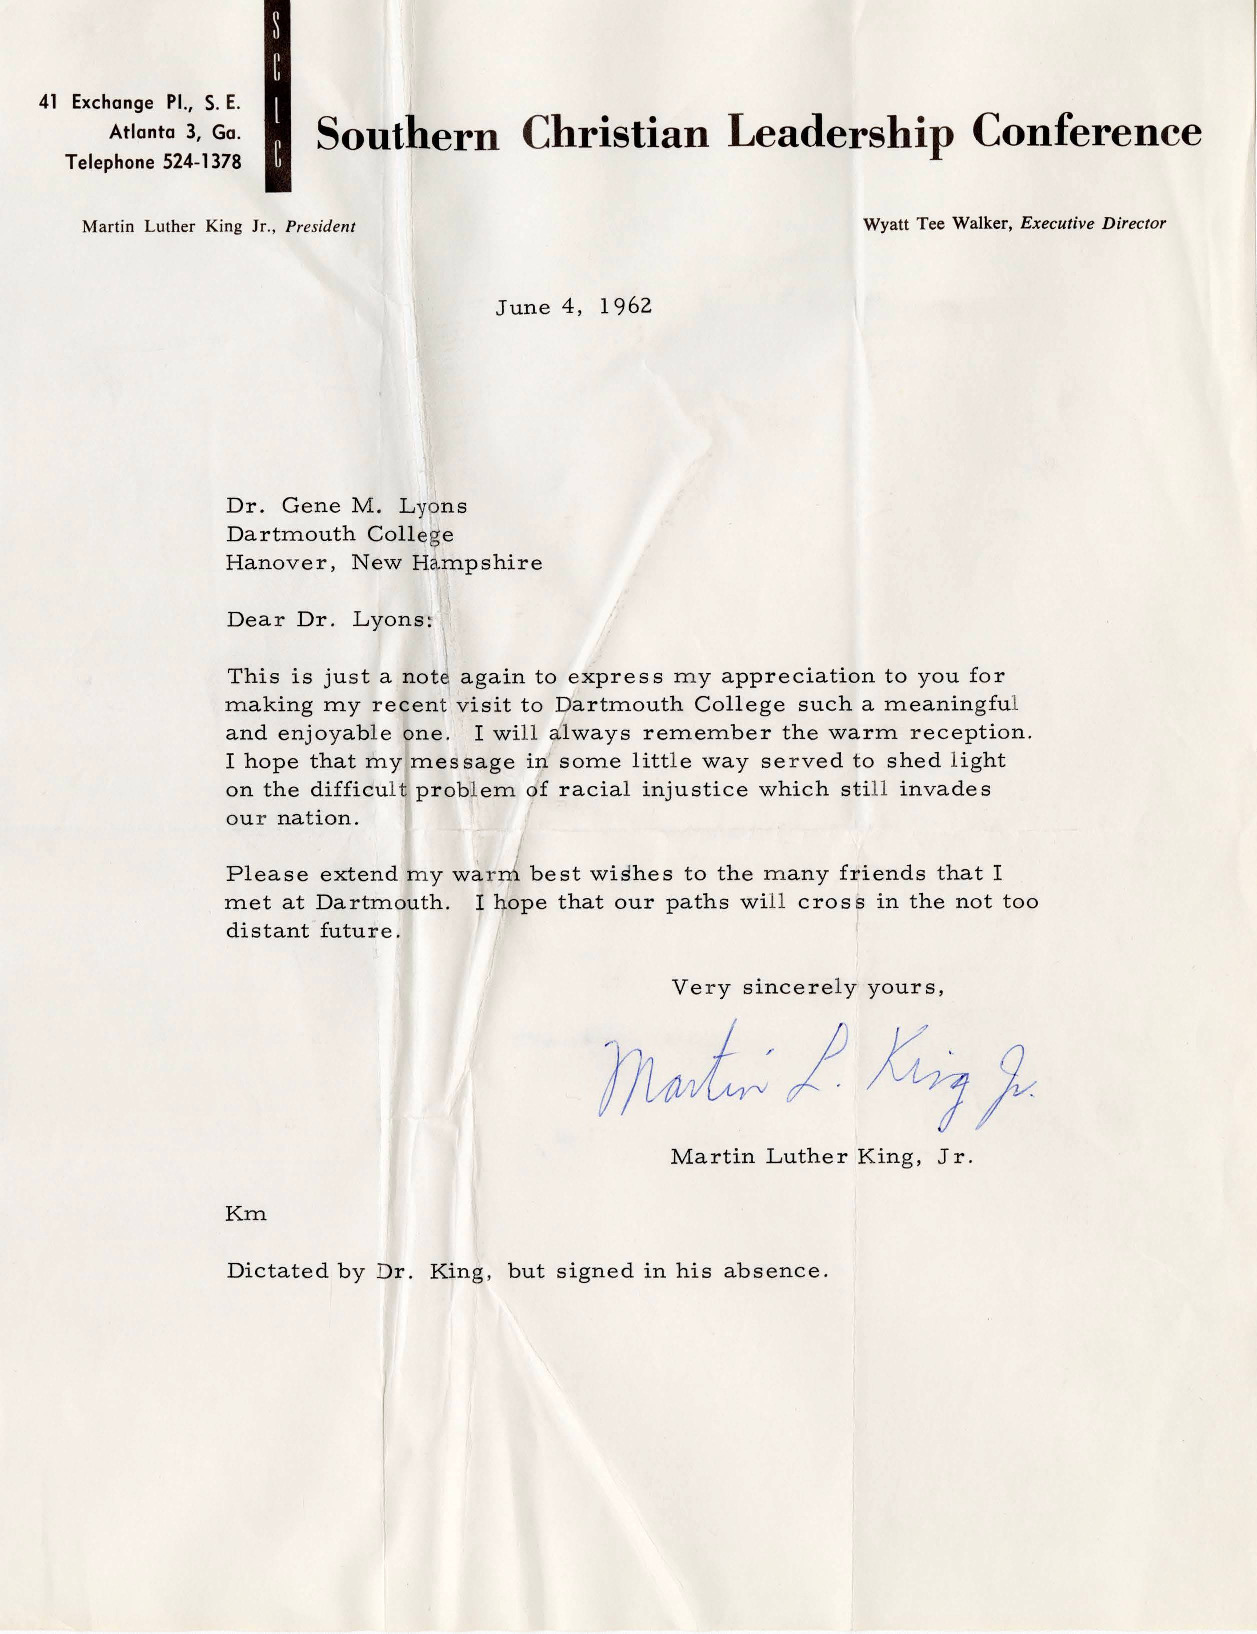 "In this letter to Dartmouth Professor Gene Lyons, Civil Rights leader Dr. Martin Luther King, Jr. expresses his appreciation for the warm welcome he received at Dartmouth and the hope that his lecture ""Towards Freedom"" shed ""light on the difficult problem of racial injustice."" Dr. King concludes by expressing his hopes that he will cross paths with Dr. Lyons in the future."